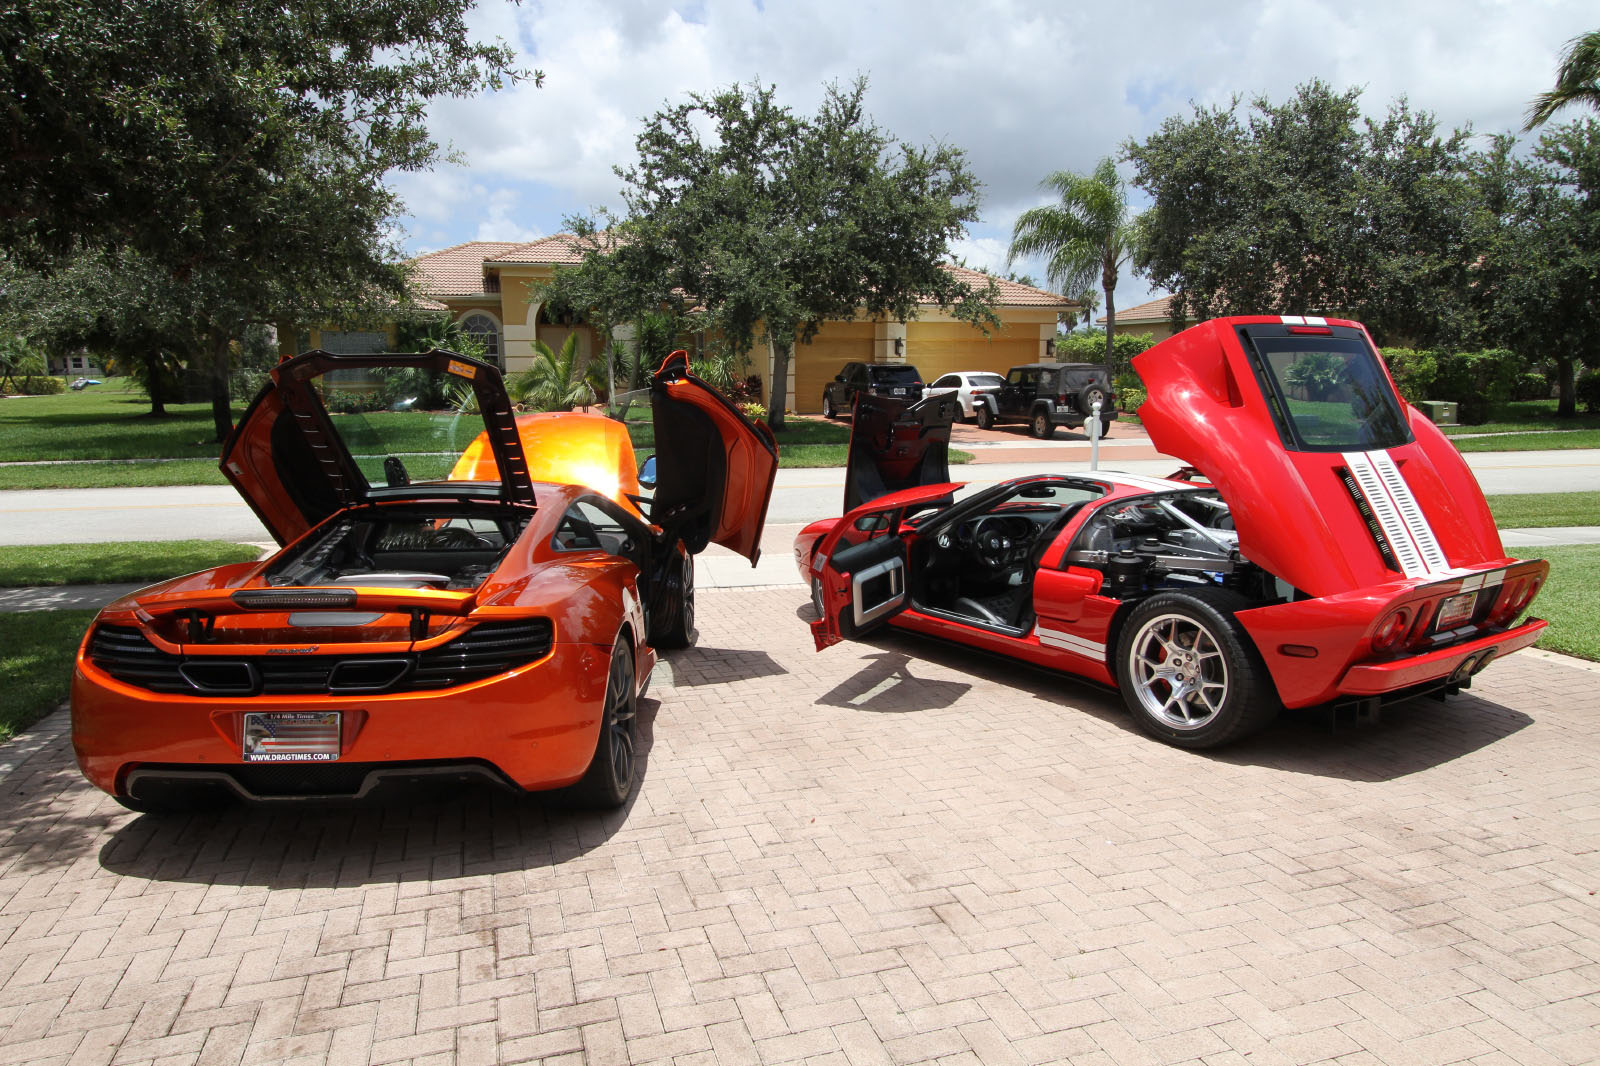 mclaren-mp4-12c-volcano-orange-vs-ford-gt-red-white-015